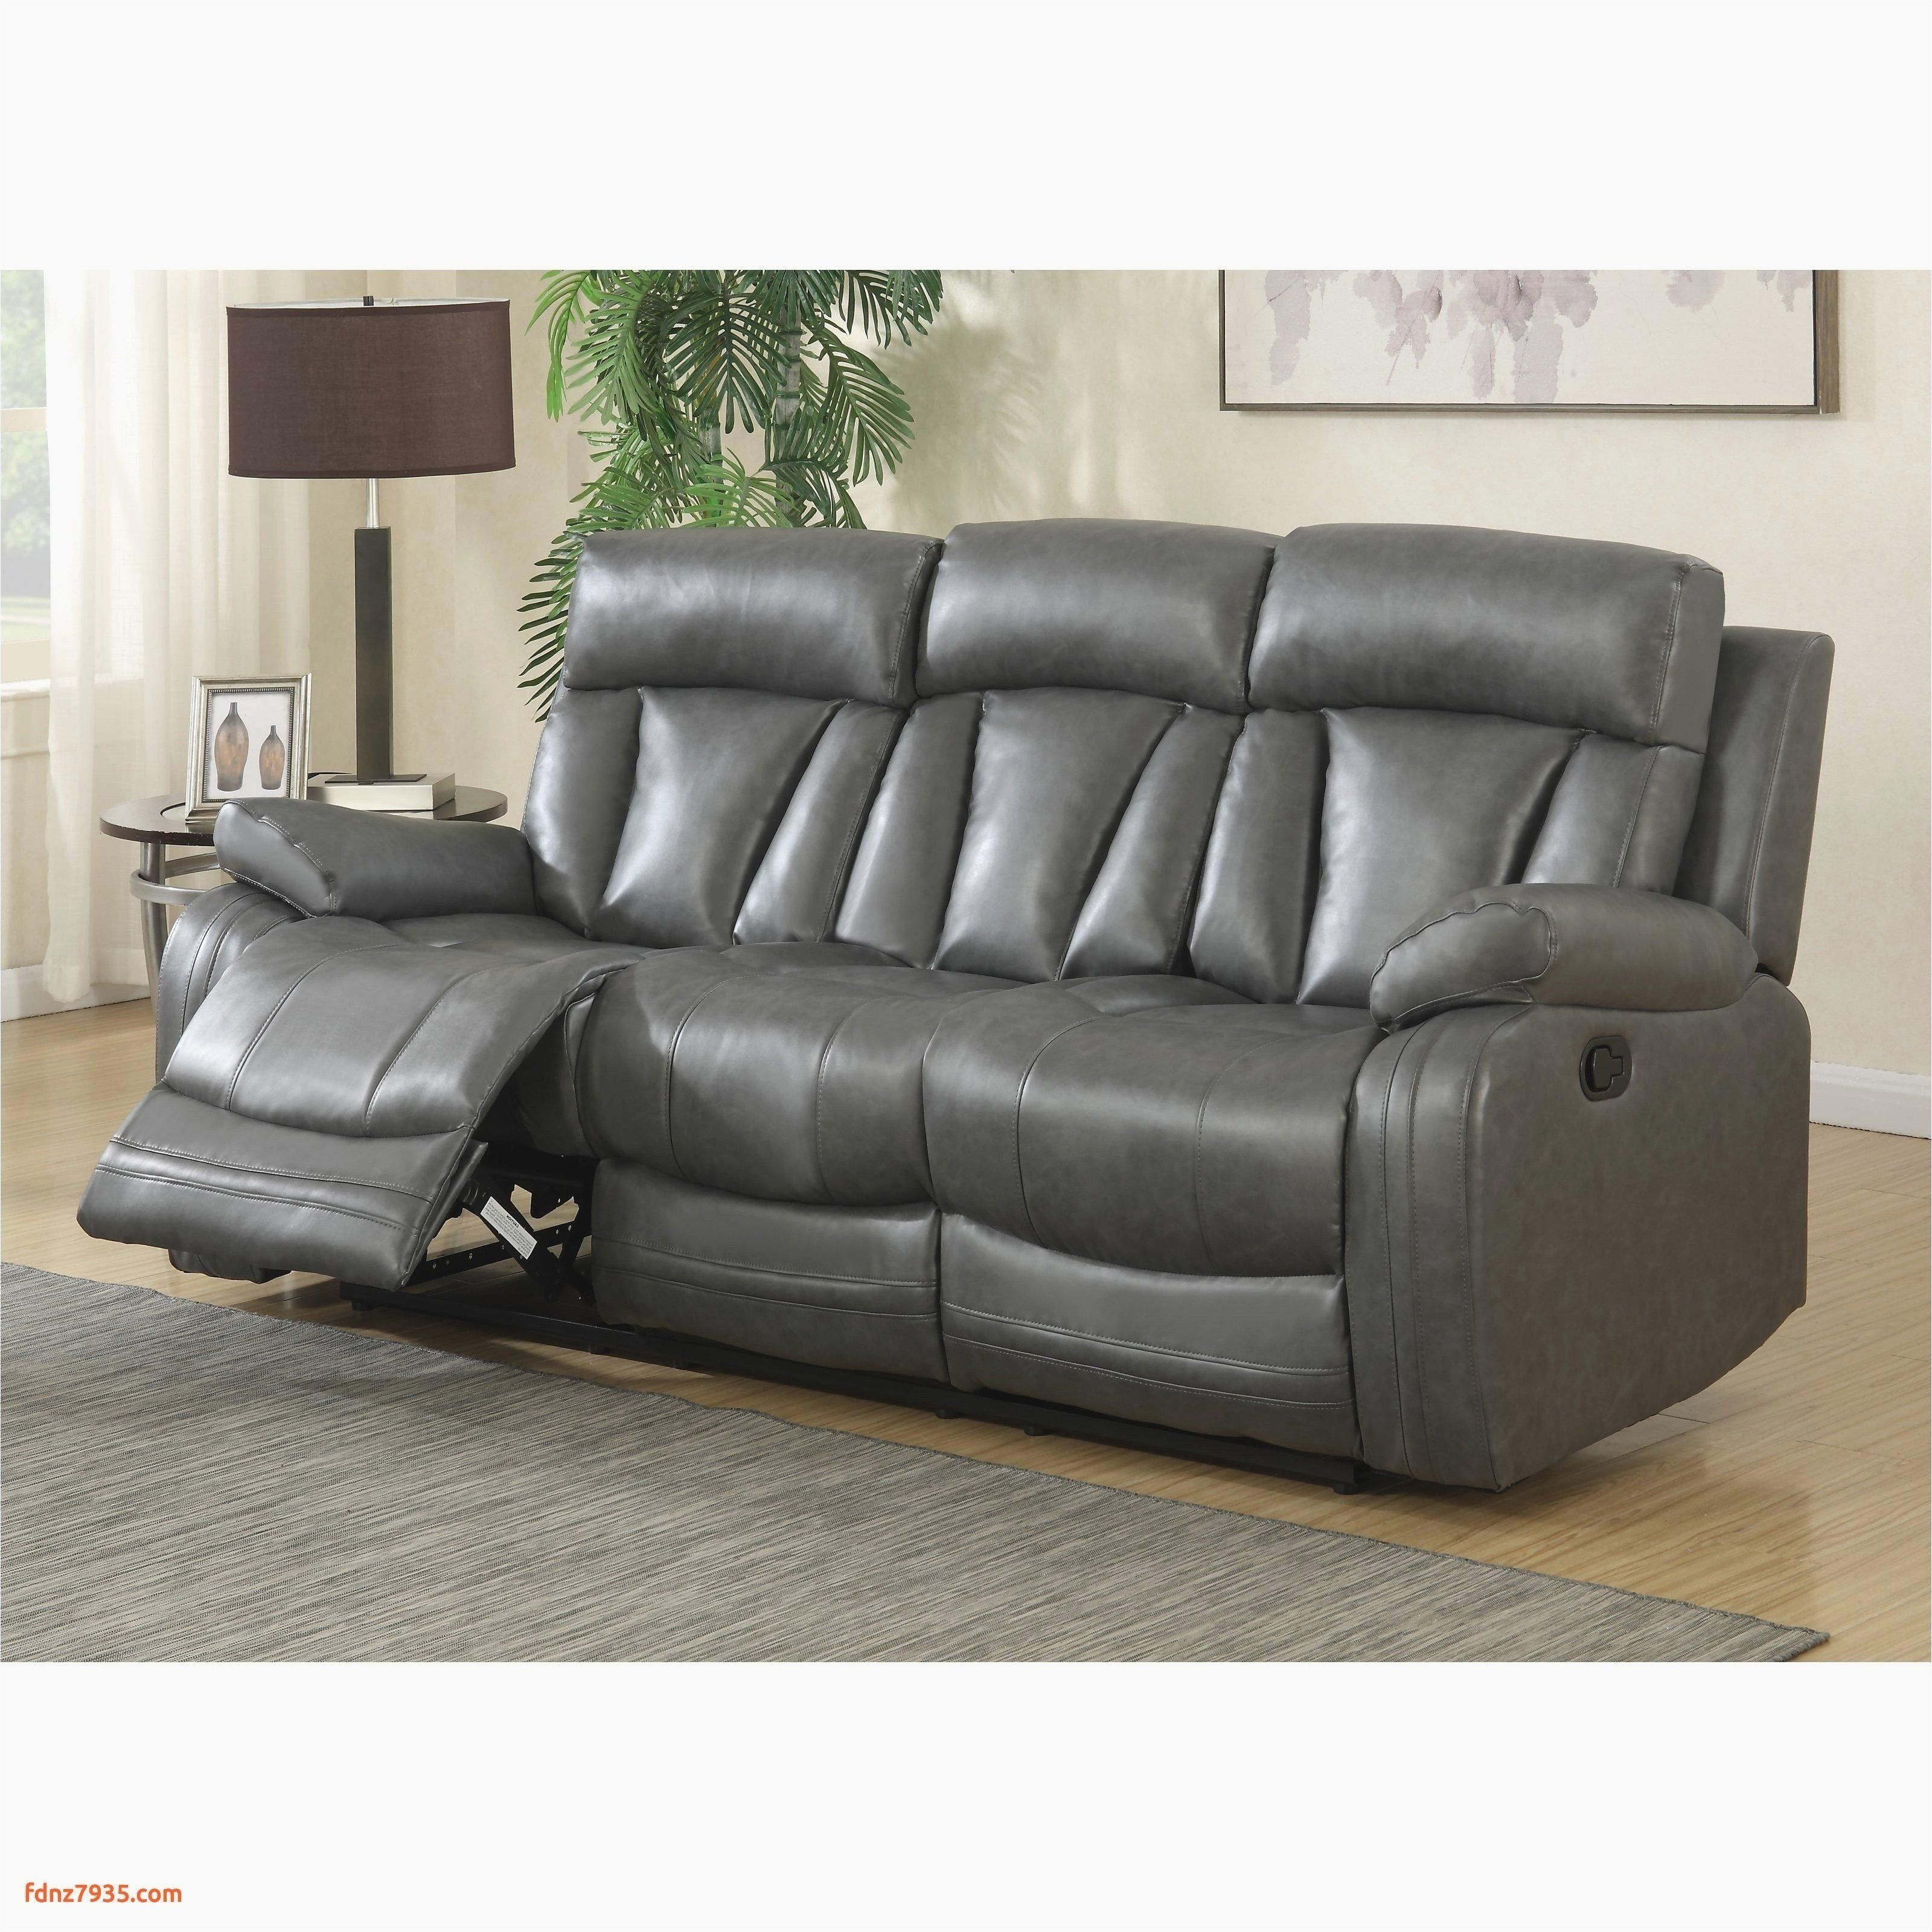 Leather Sofa Living Room Ideas Best Of Big Sofa Sam Haus Mobel In 2020 Sectional Sofa With Chaise Sofa And Loveseat Set Leather Sofa Set